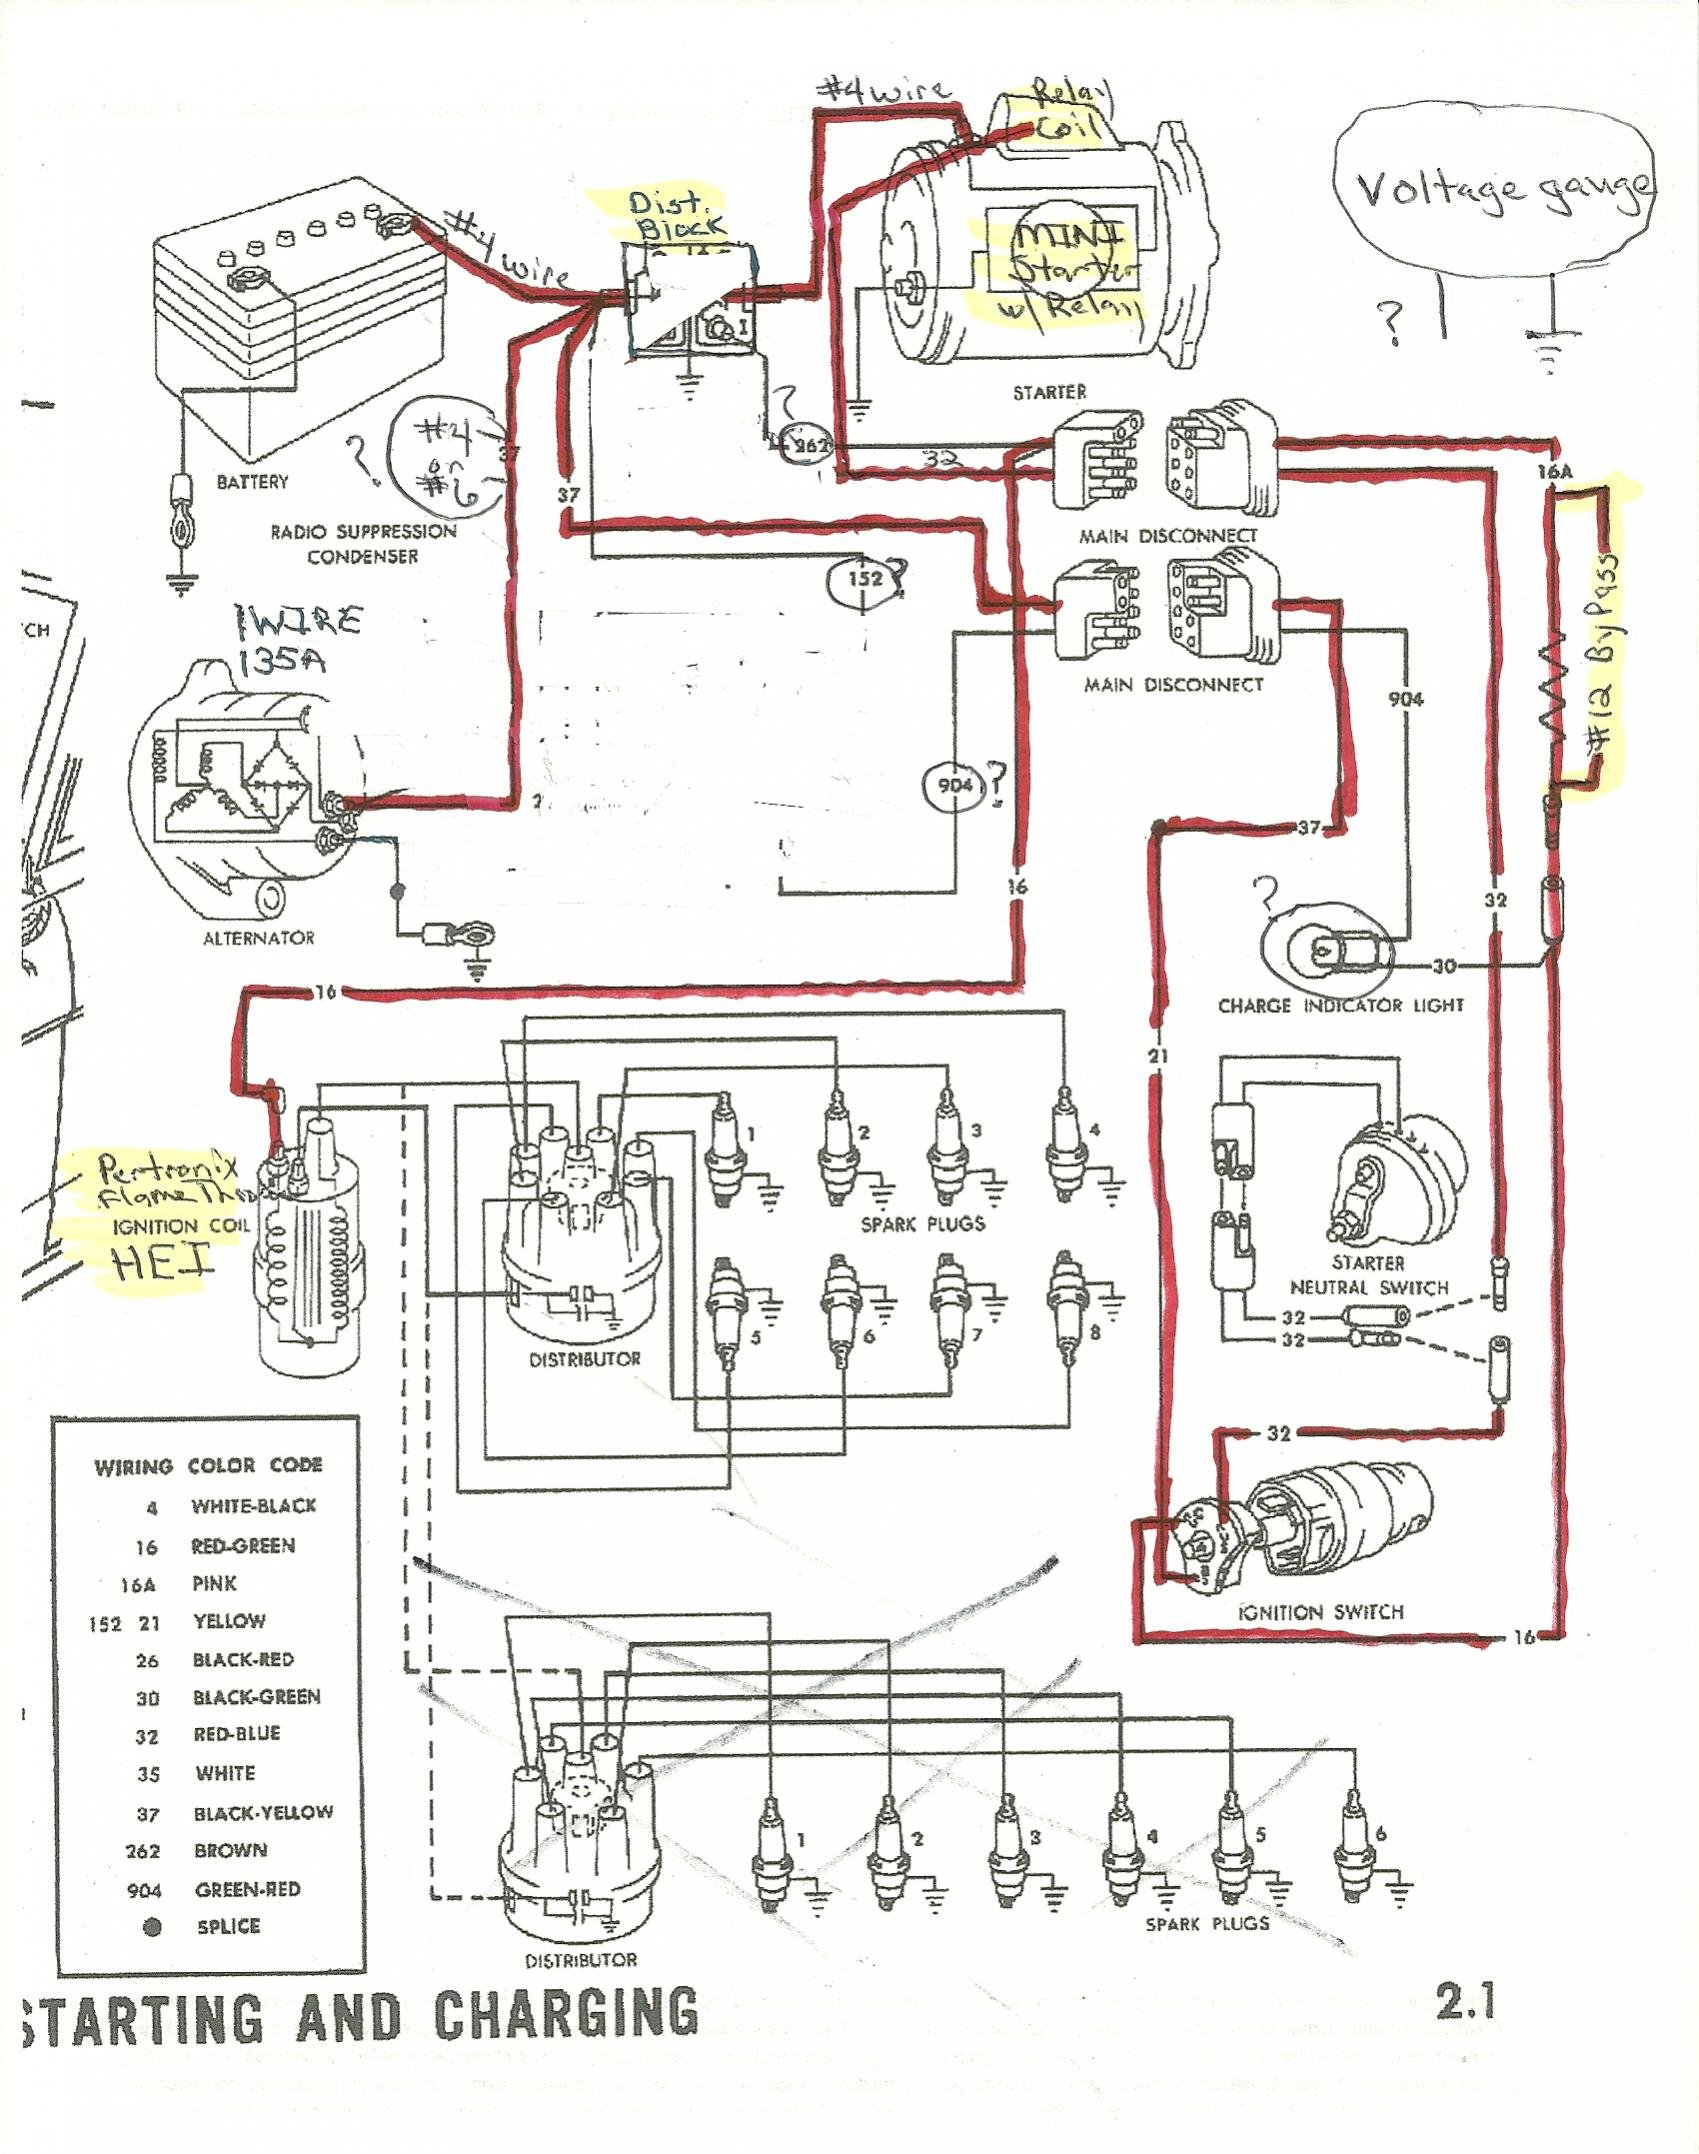 Dodge Alternator Wiring Diagram 1981 Library 1997 Dakota Distributor 1965 Starter And Ford Mustang Forum Diesel Voltage Regulator